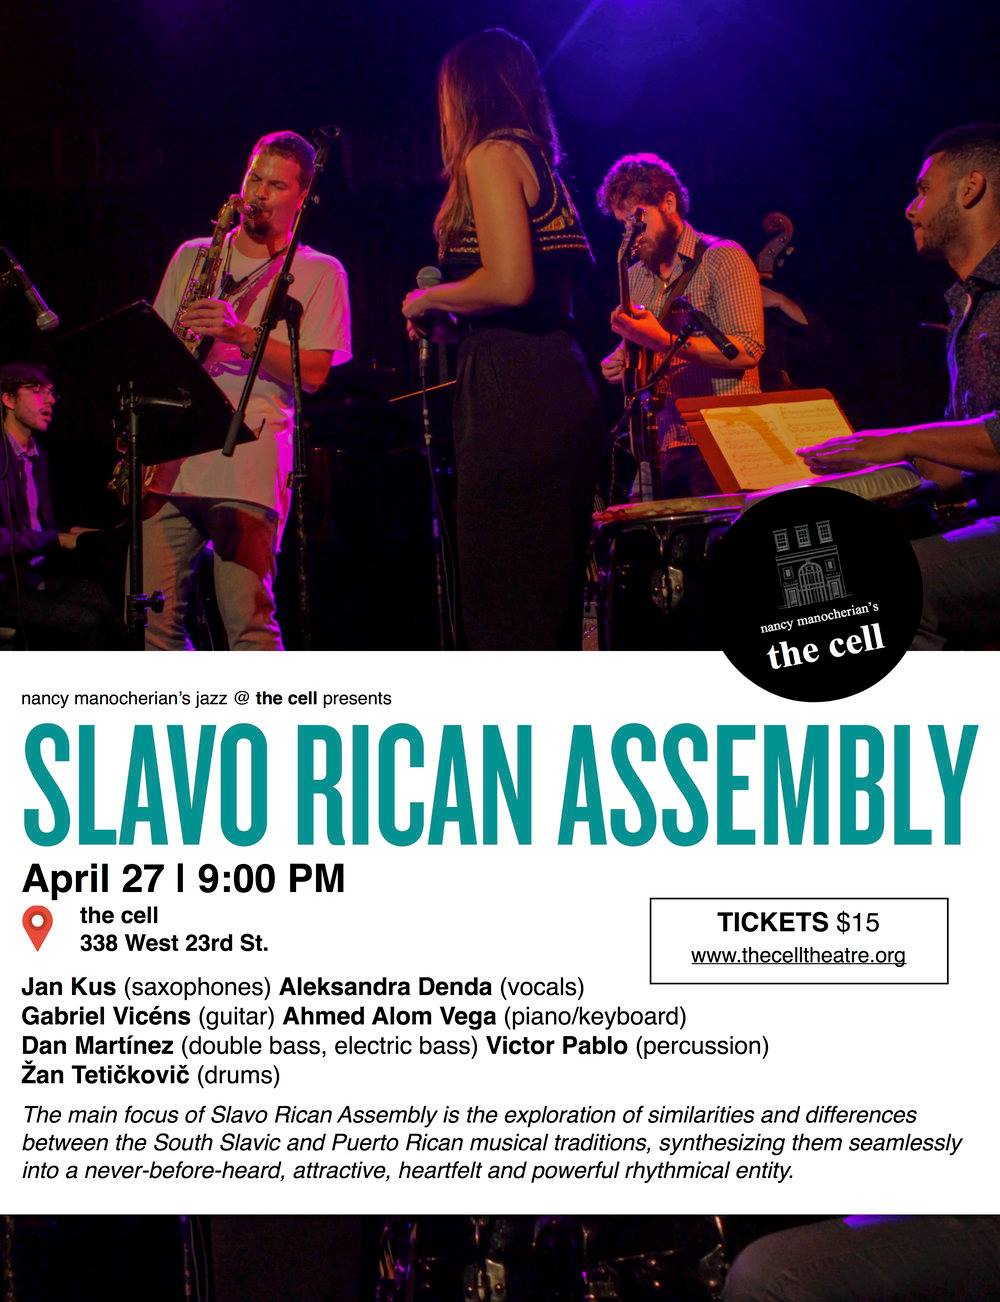 Slavo-Rican Assembly (poster), April 27th 2019 The Cell.jpg